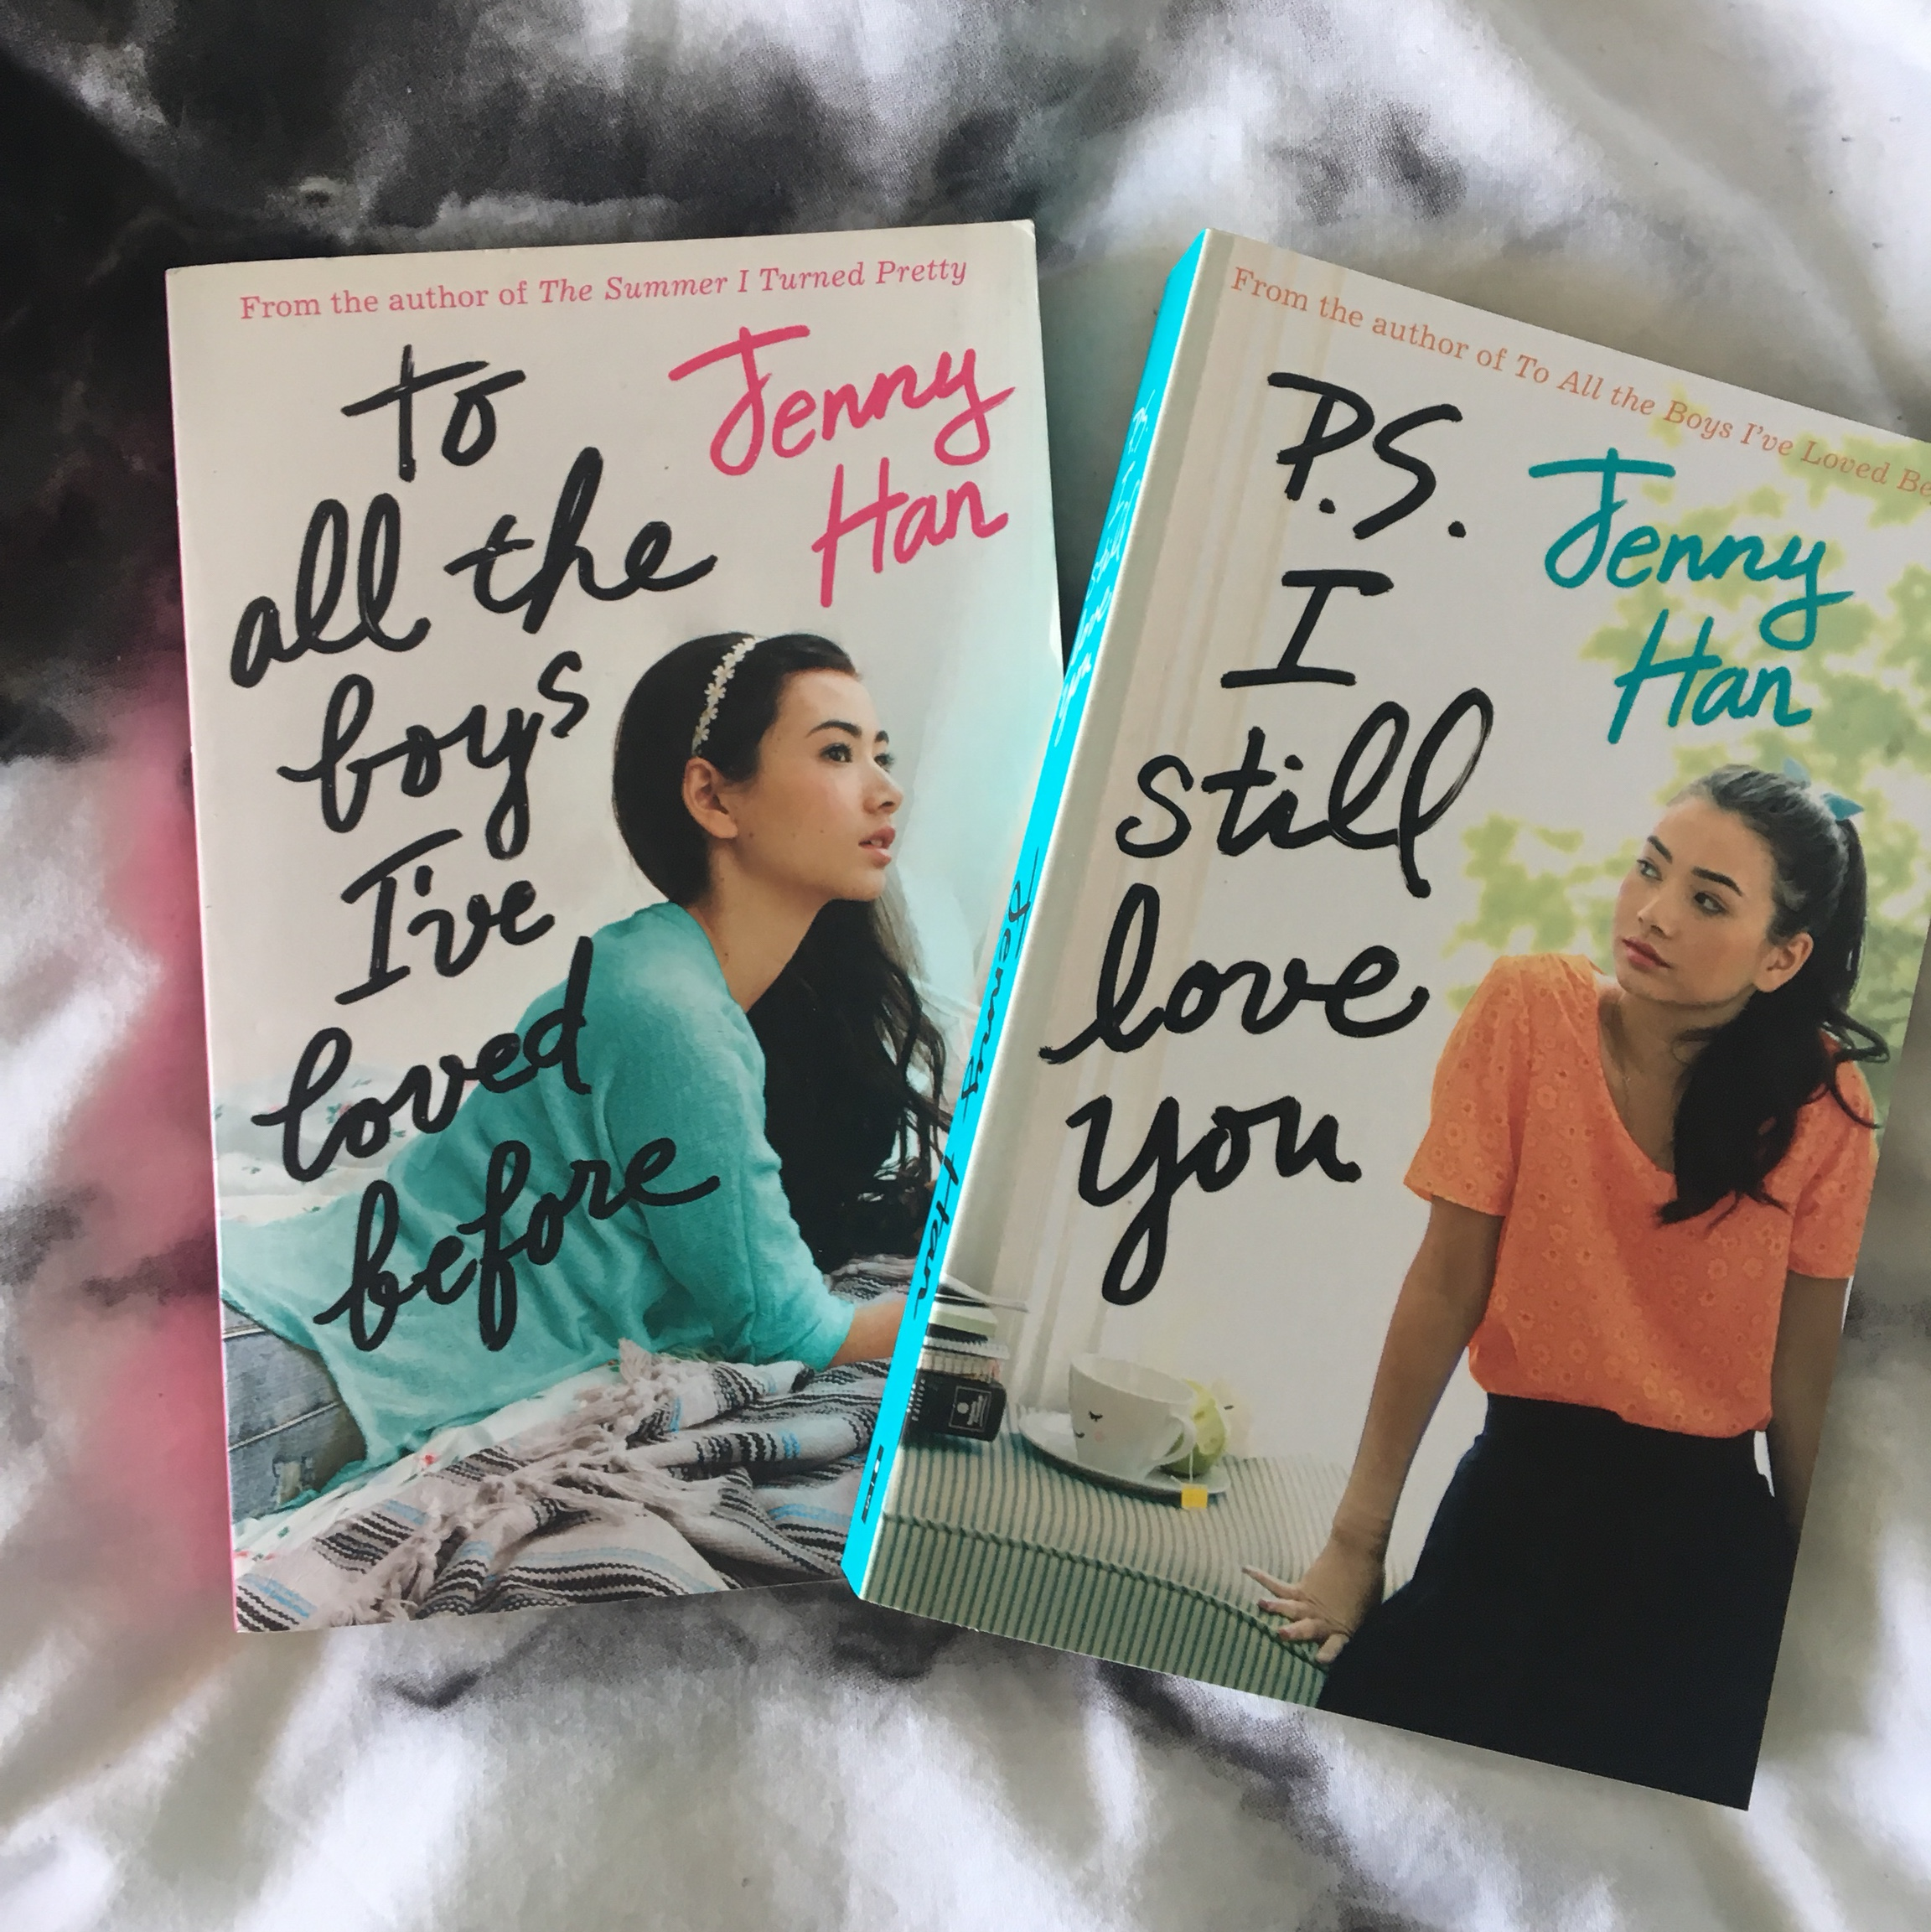 First 2 books in the 'To all the boys I've loved    - Depop